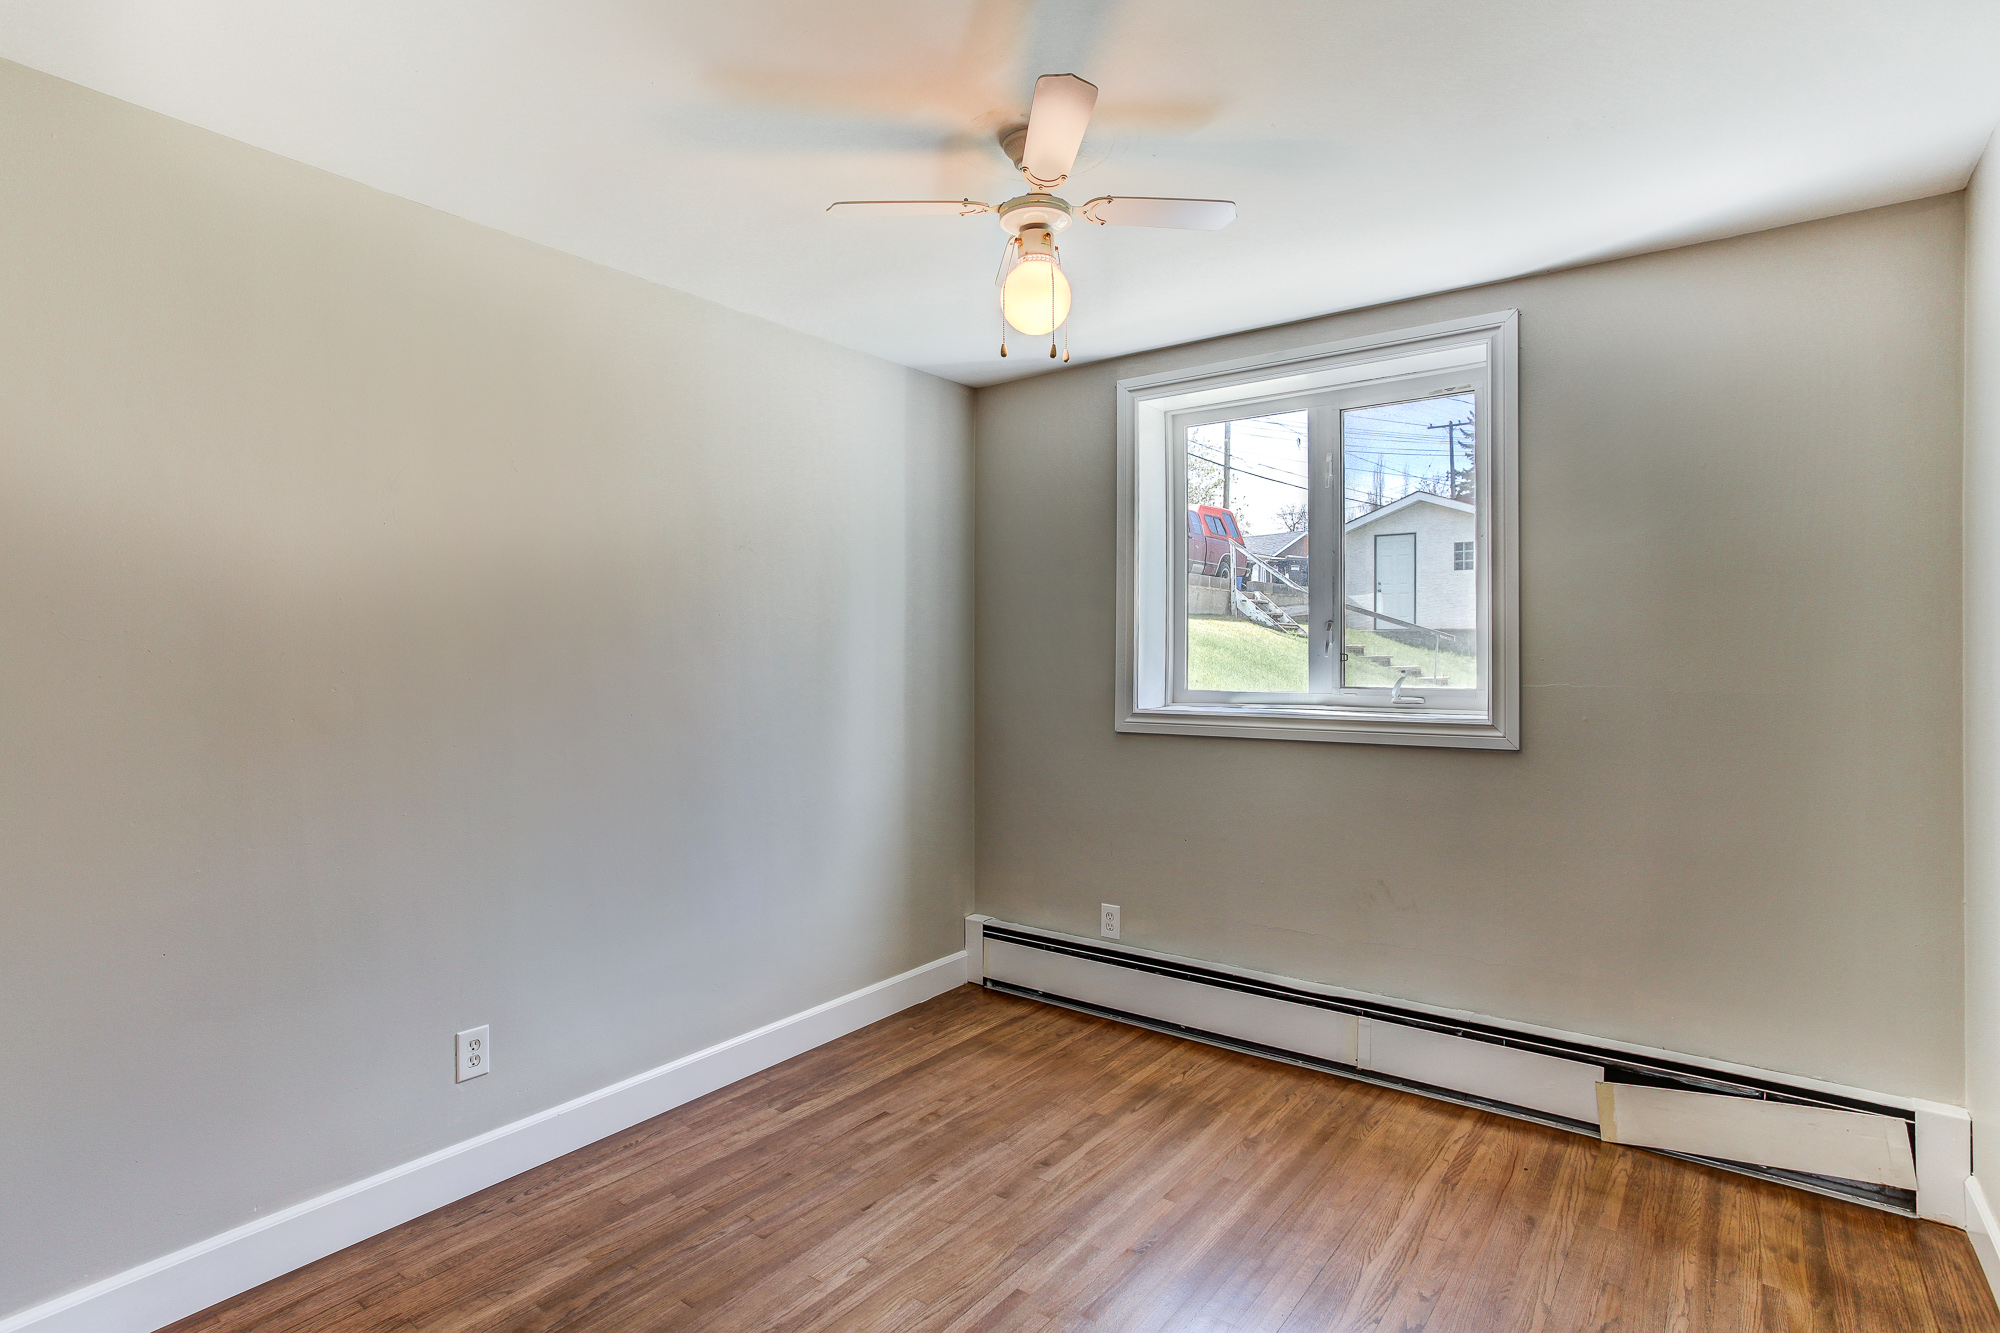 #1, 4415 Centre Street NE is Now Available